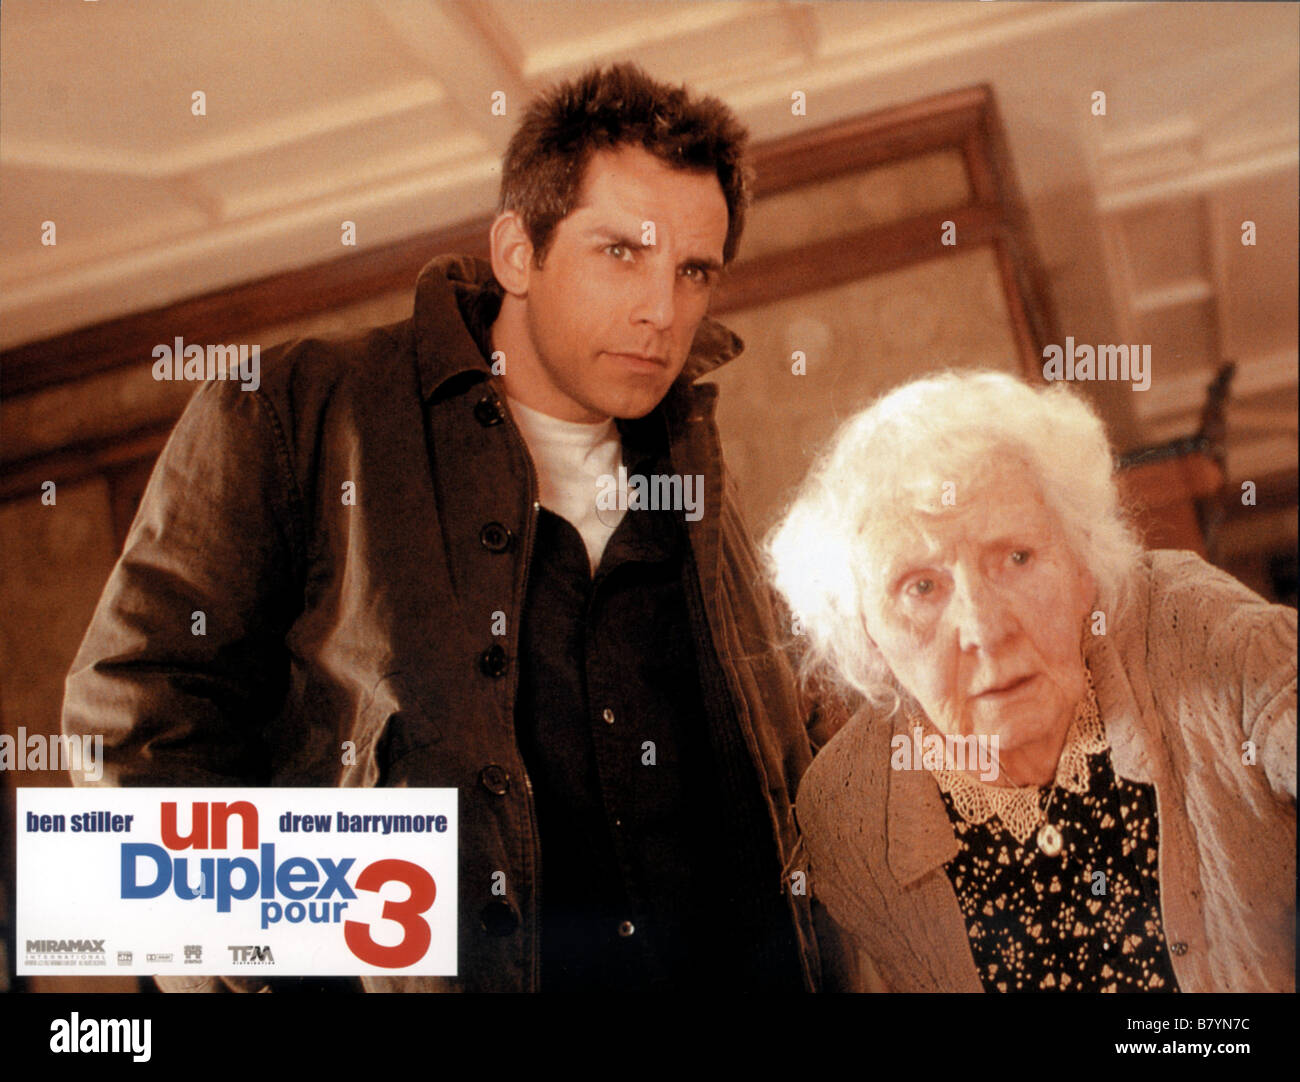 Duplex 2003 Stock Photos & Duplex 2003 Stock Images - Alamy